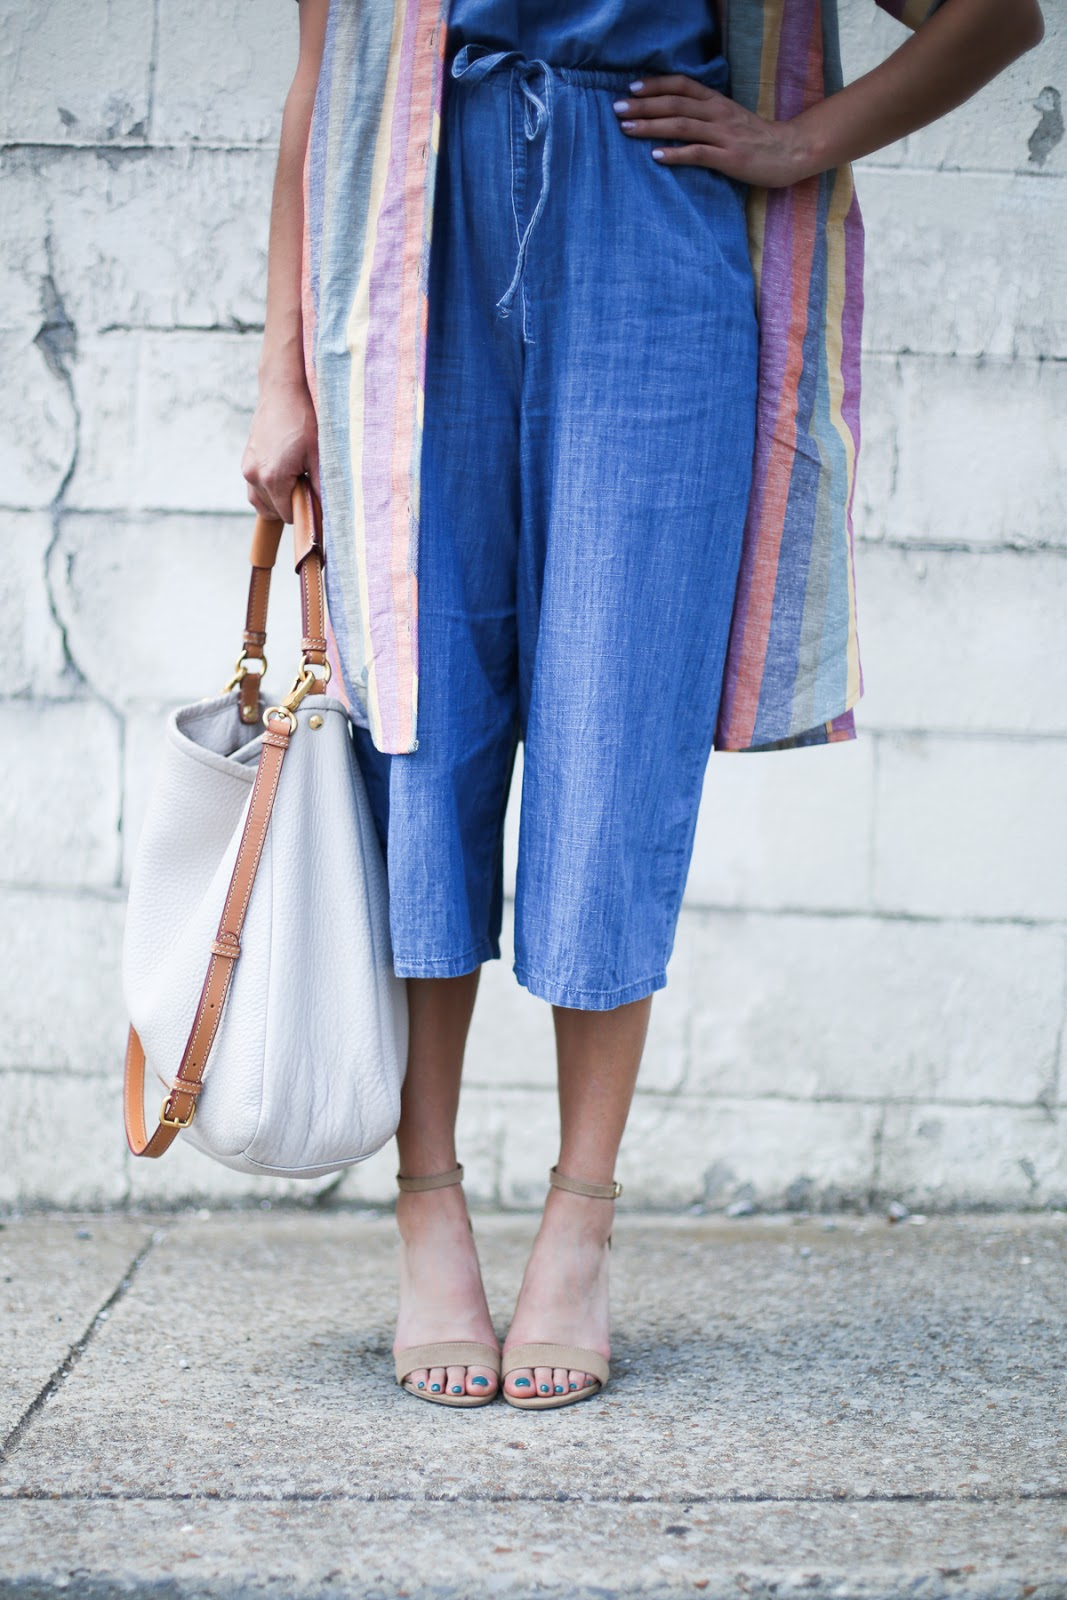 Priya the Blog, Nashville fashion blog, Nashville fashion blogger, Nashville style blog, Nashville style blogger, milkmaid braids, Madewell Rainbow Stripe Dress, chambray jumpsuit, Summer outfit, Madewell Rainbow Stripe, ban.do gold sunglasses, nude suede heels, rainbow tunic over chambray jumpsuit